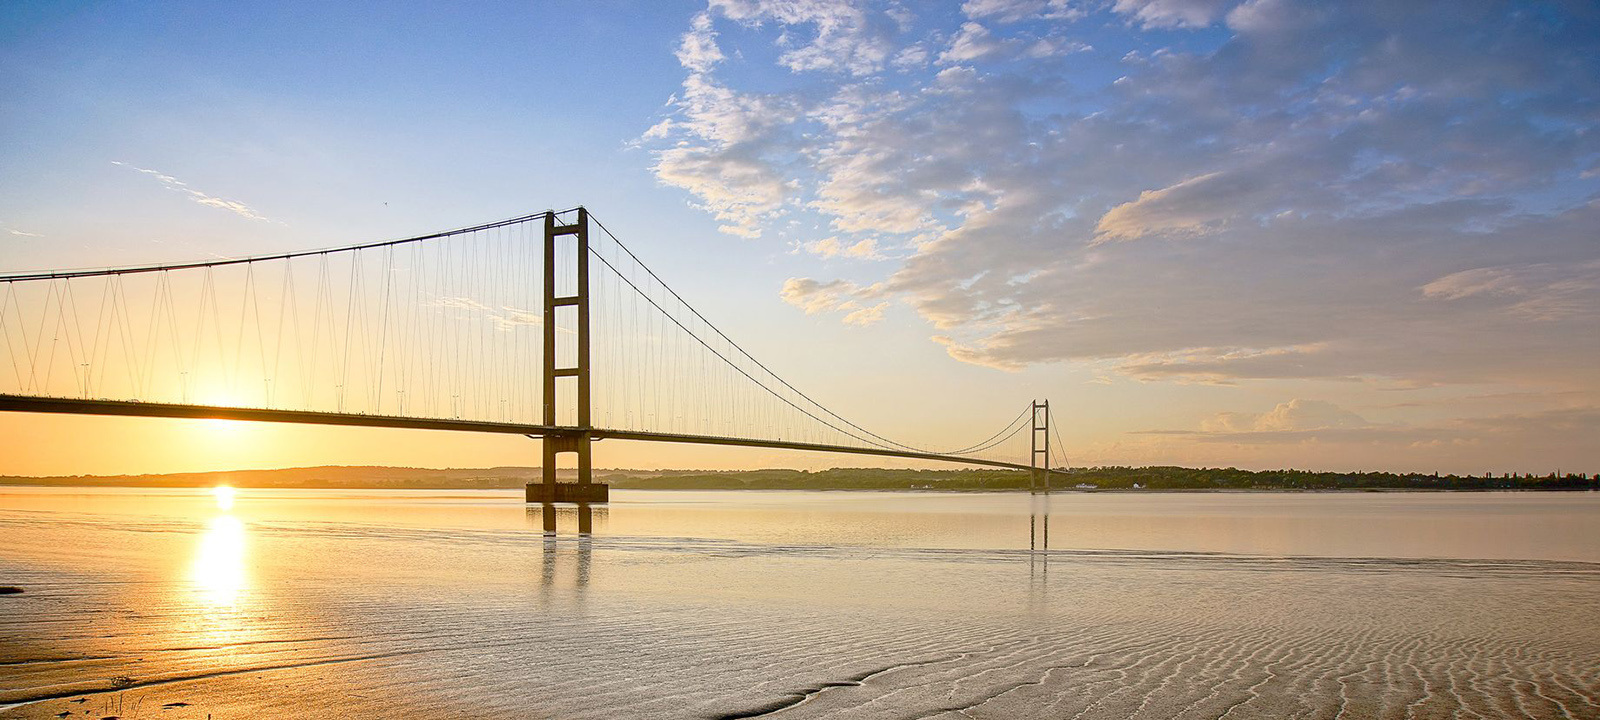 The Humber Bridge is a local landmark to Brewer Wallace Solicitors in East Yorkshire